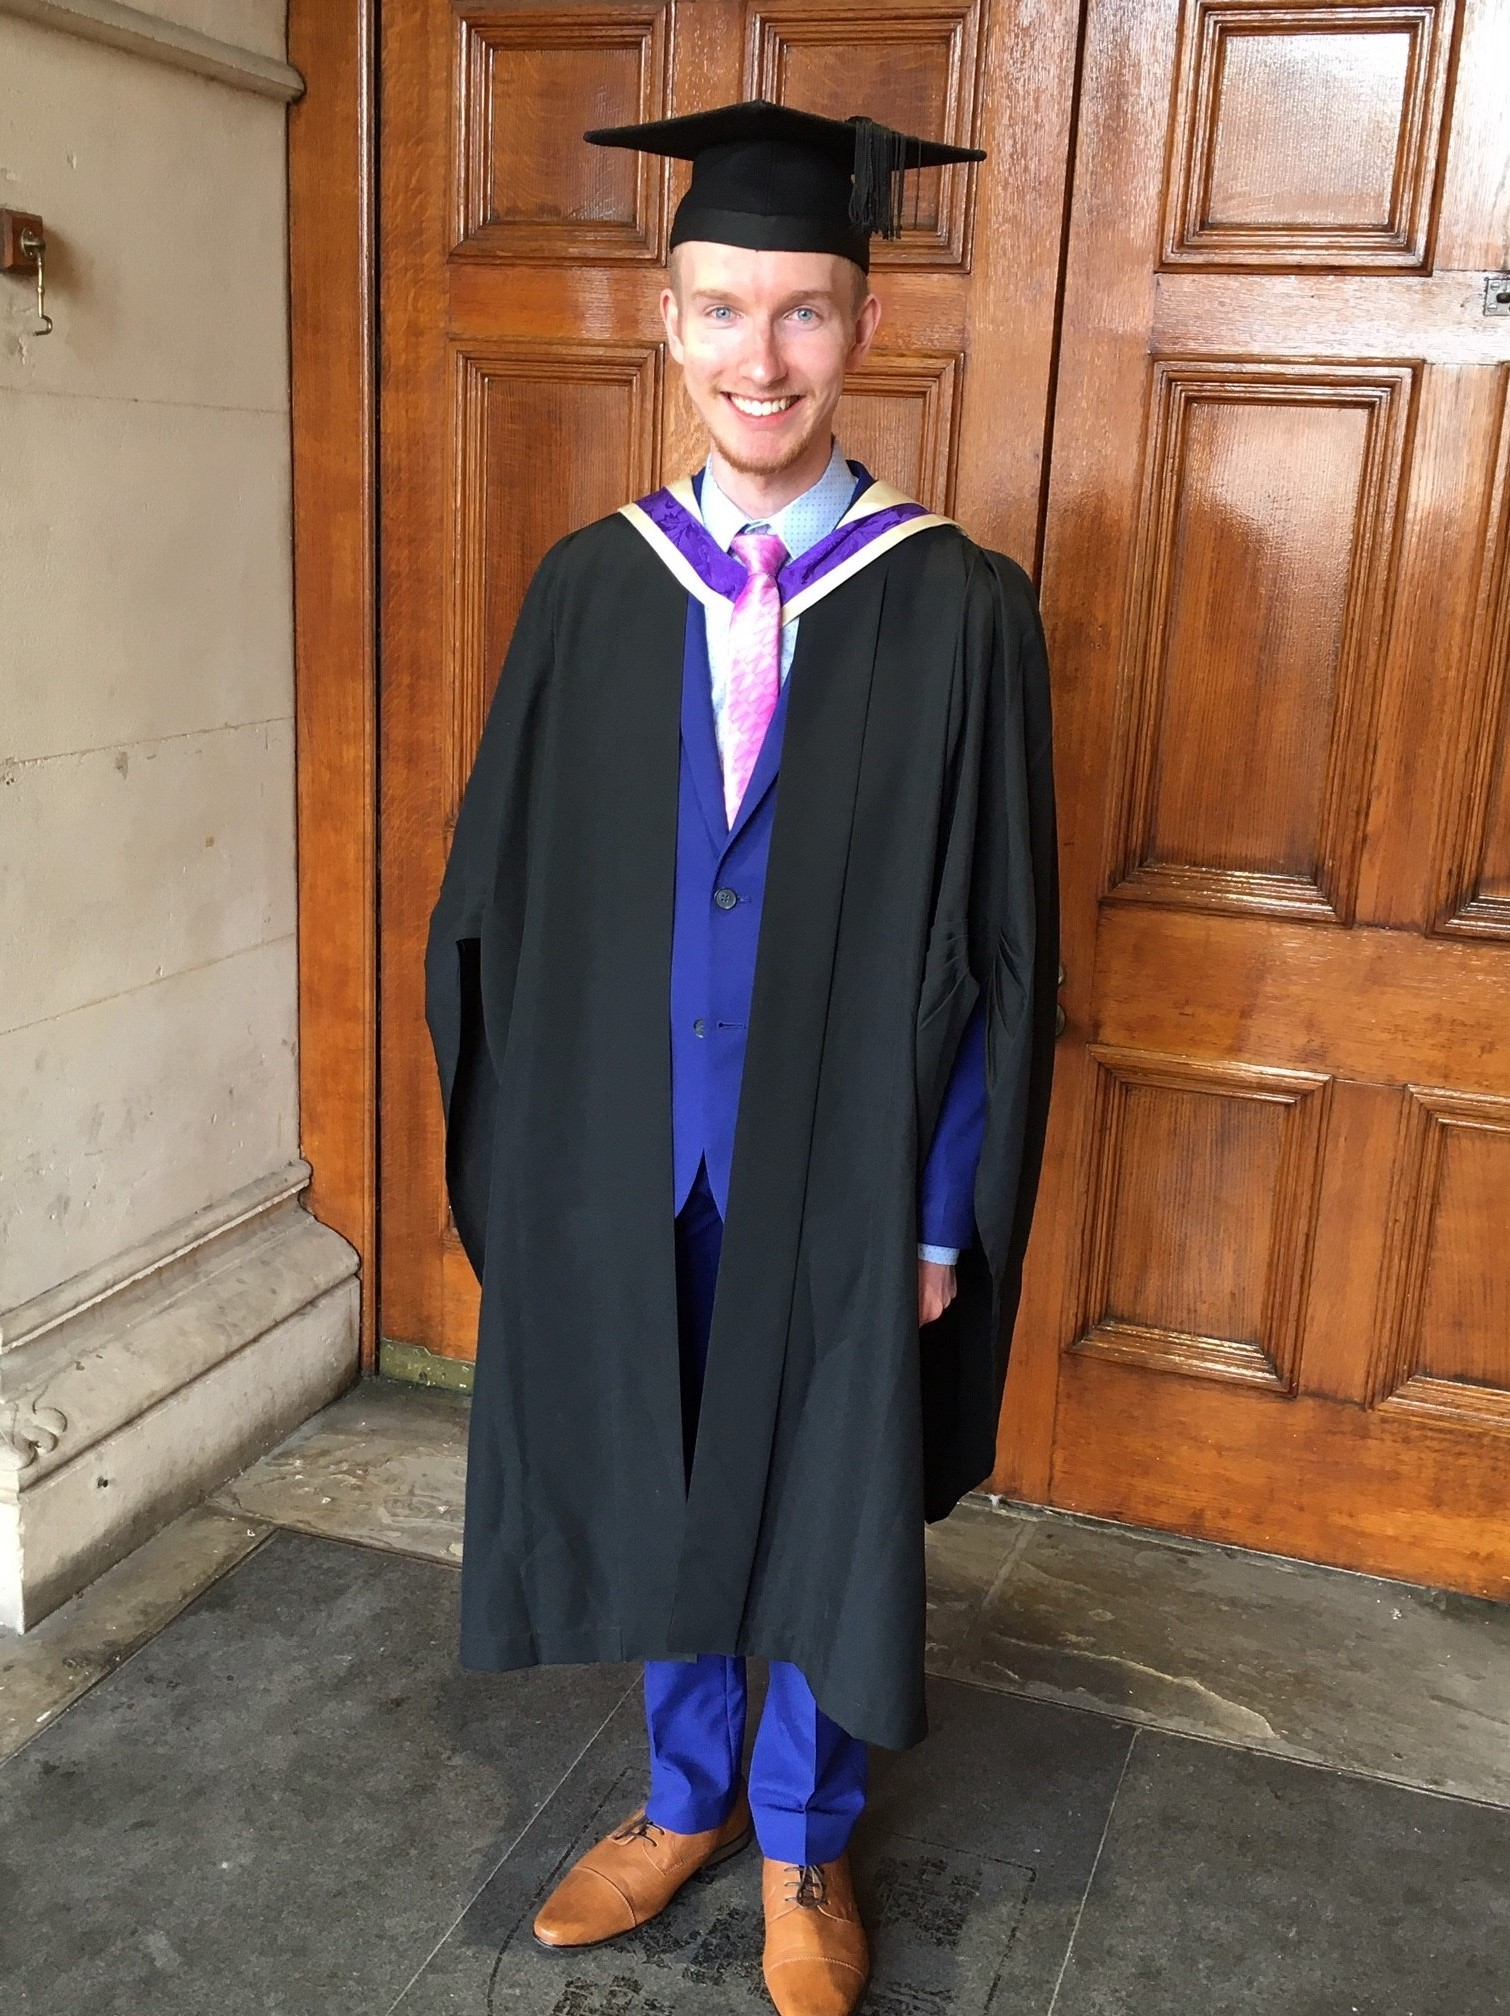 Daniel Wilkins Graduating at the University of Winchester